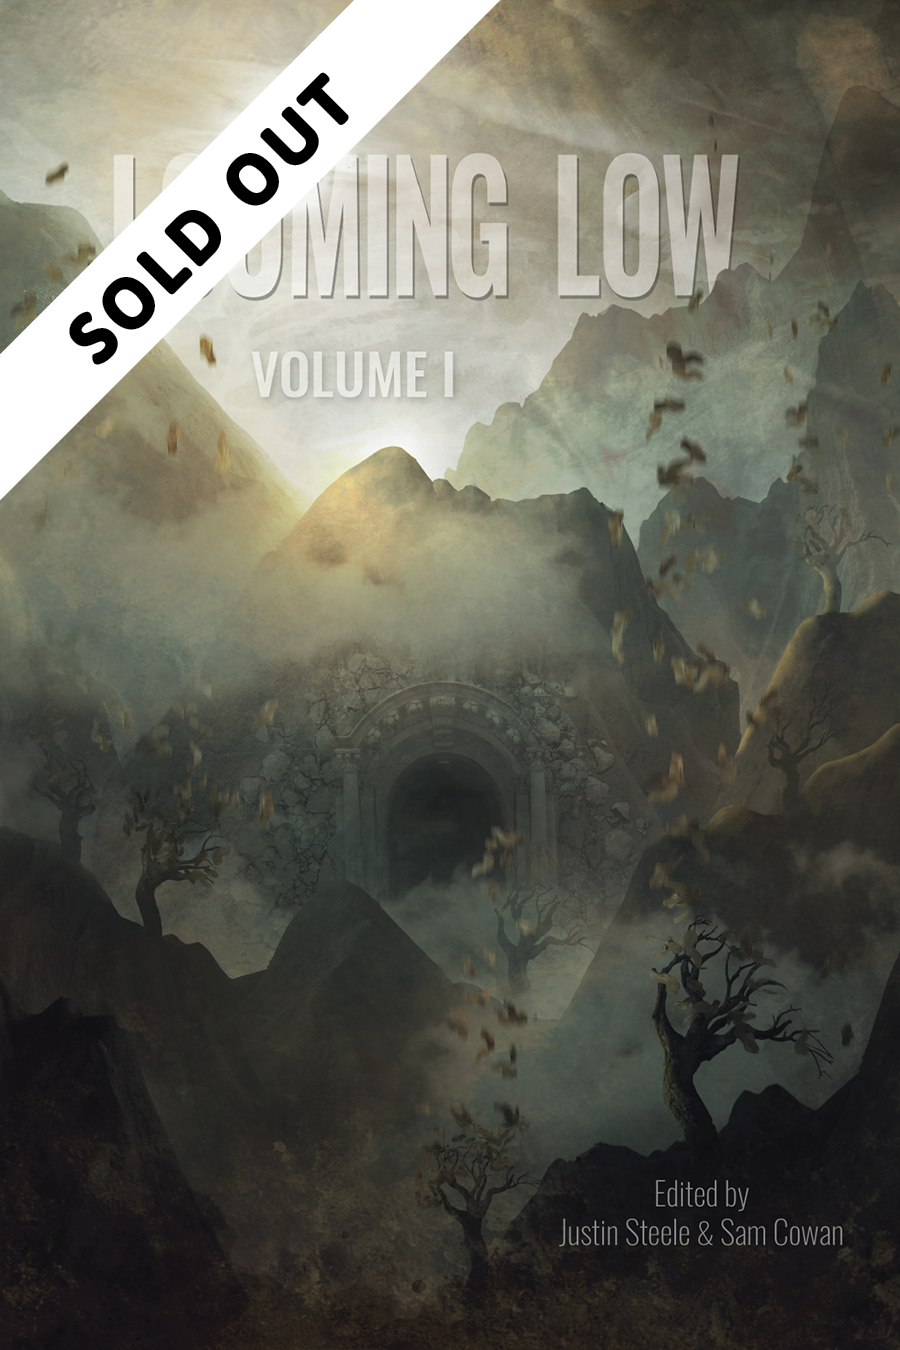 Image of Looming Low Volume I (Deluxe Hardcover)